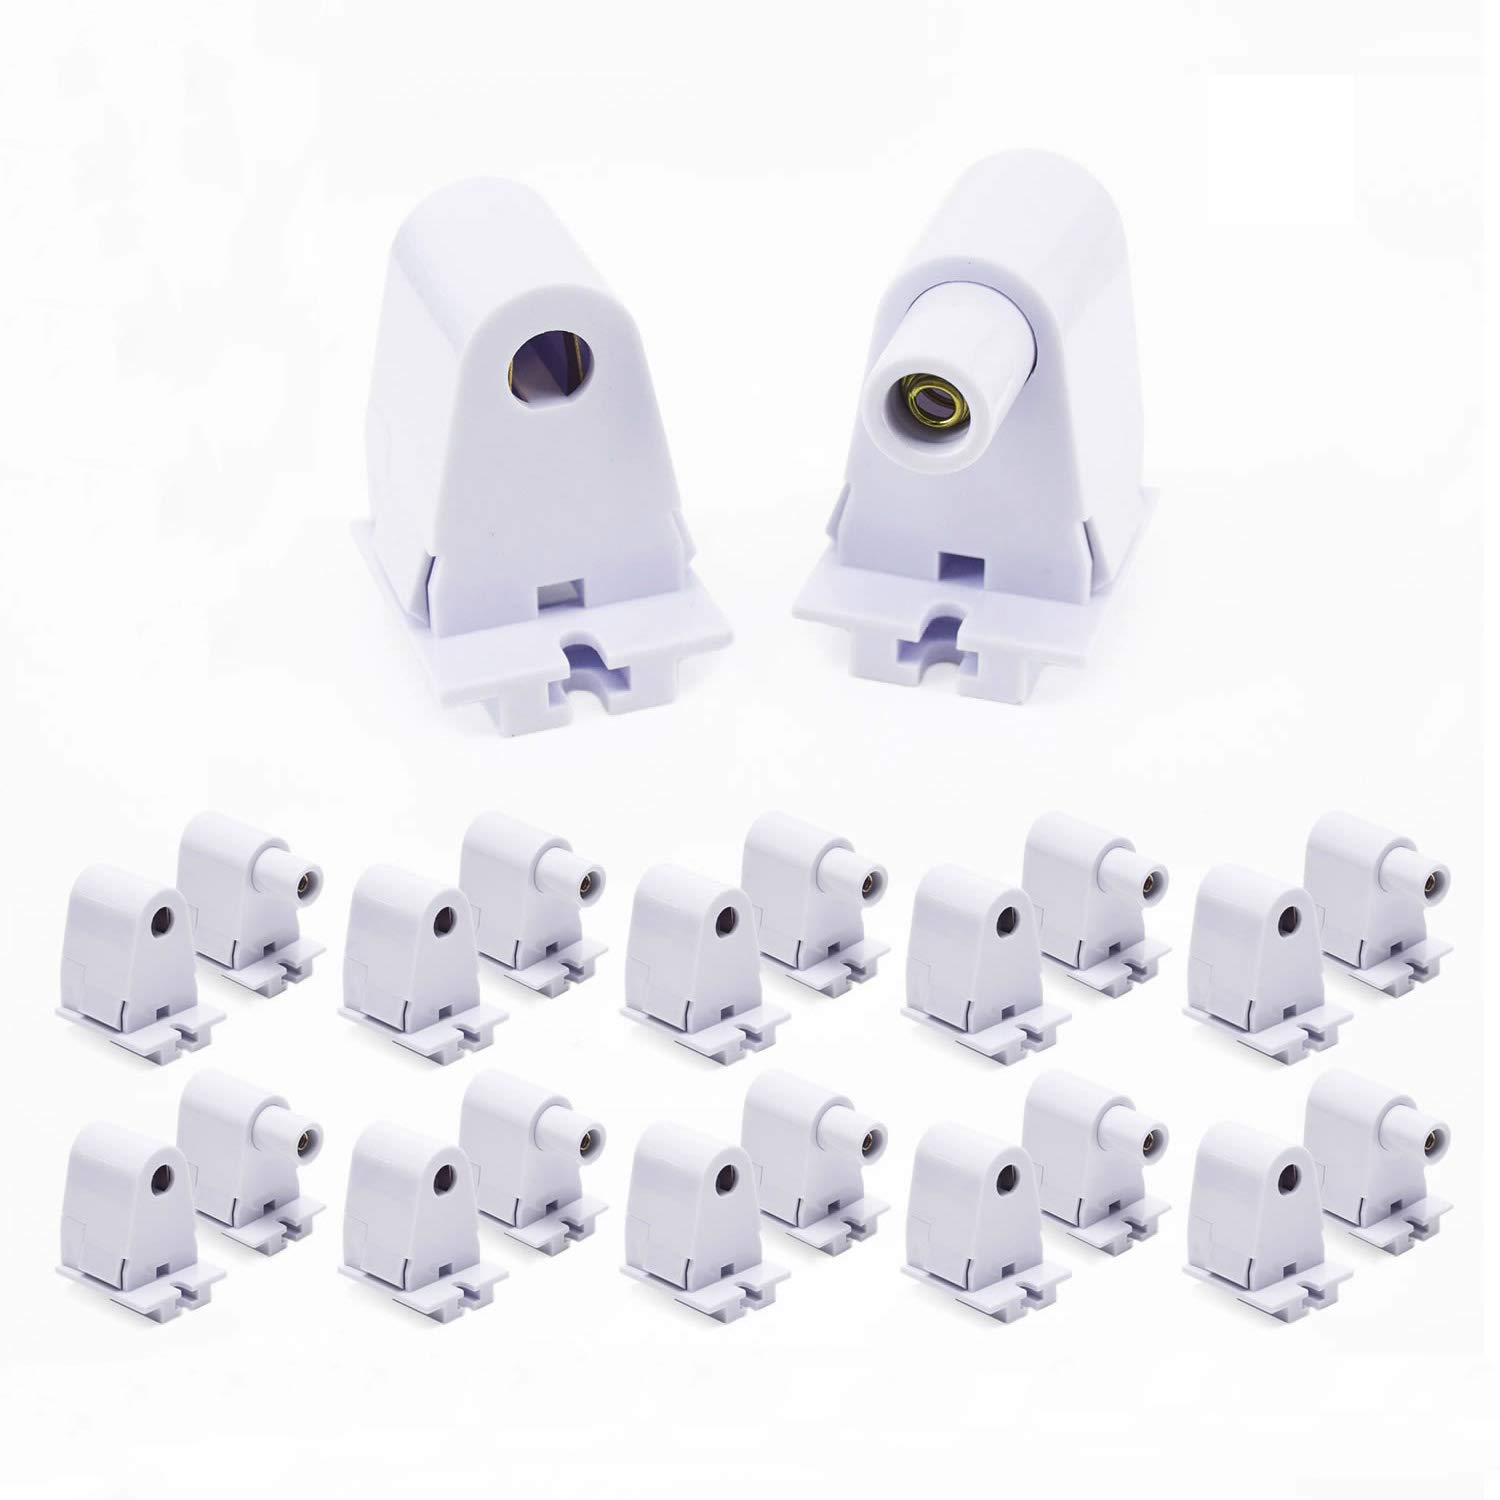 JESLED Single Pin FA8 Tombstone - (10-Pairs) Non-Shunted T8/T10/T12 LED Socket Lampholder Base Holder for 8FT Fluorescent Tube Light, Retrofiting Bulbs Fixtures, Flameresistant Plunger, UL Listed